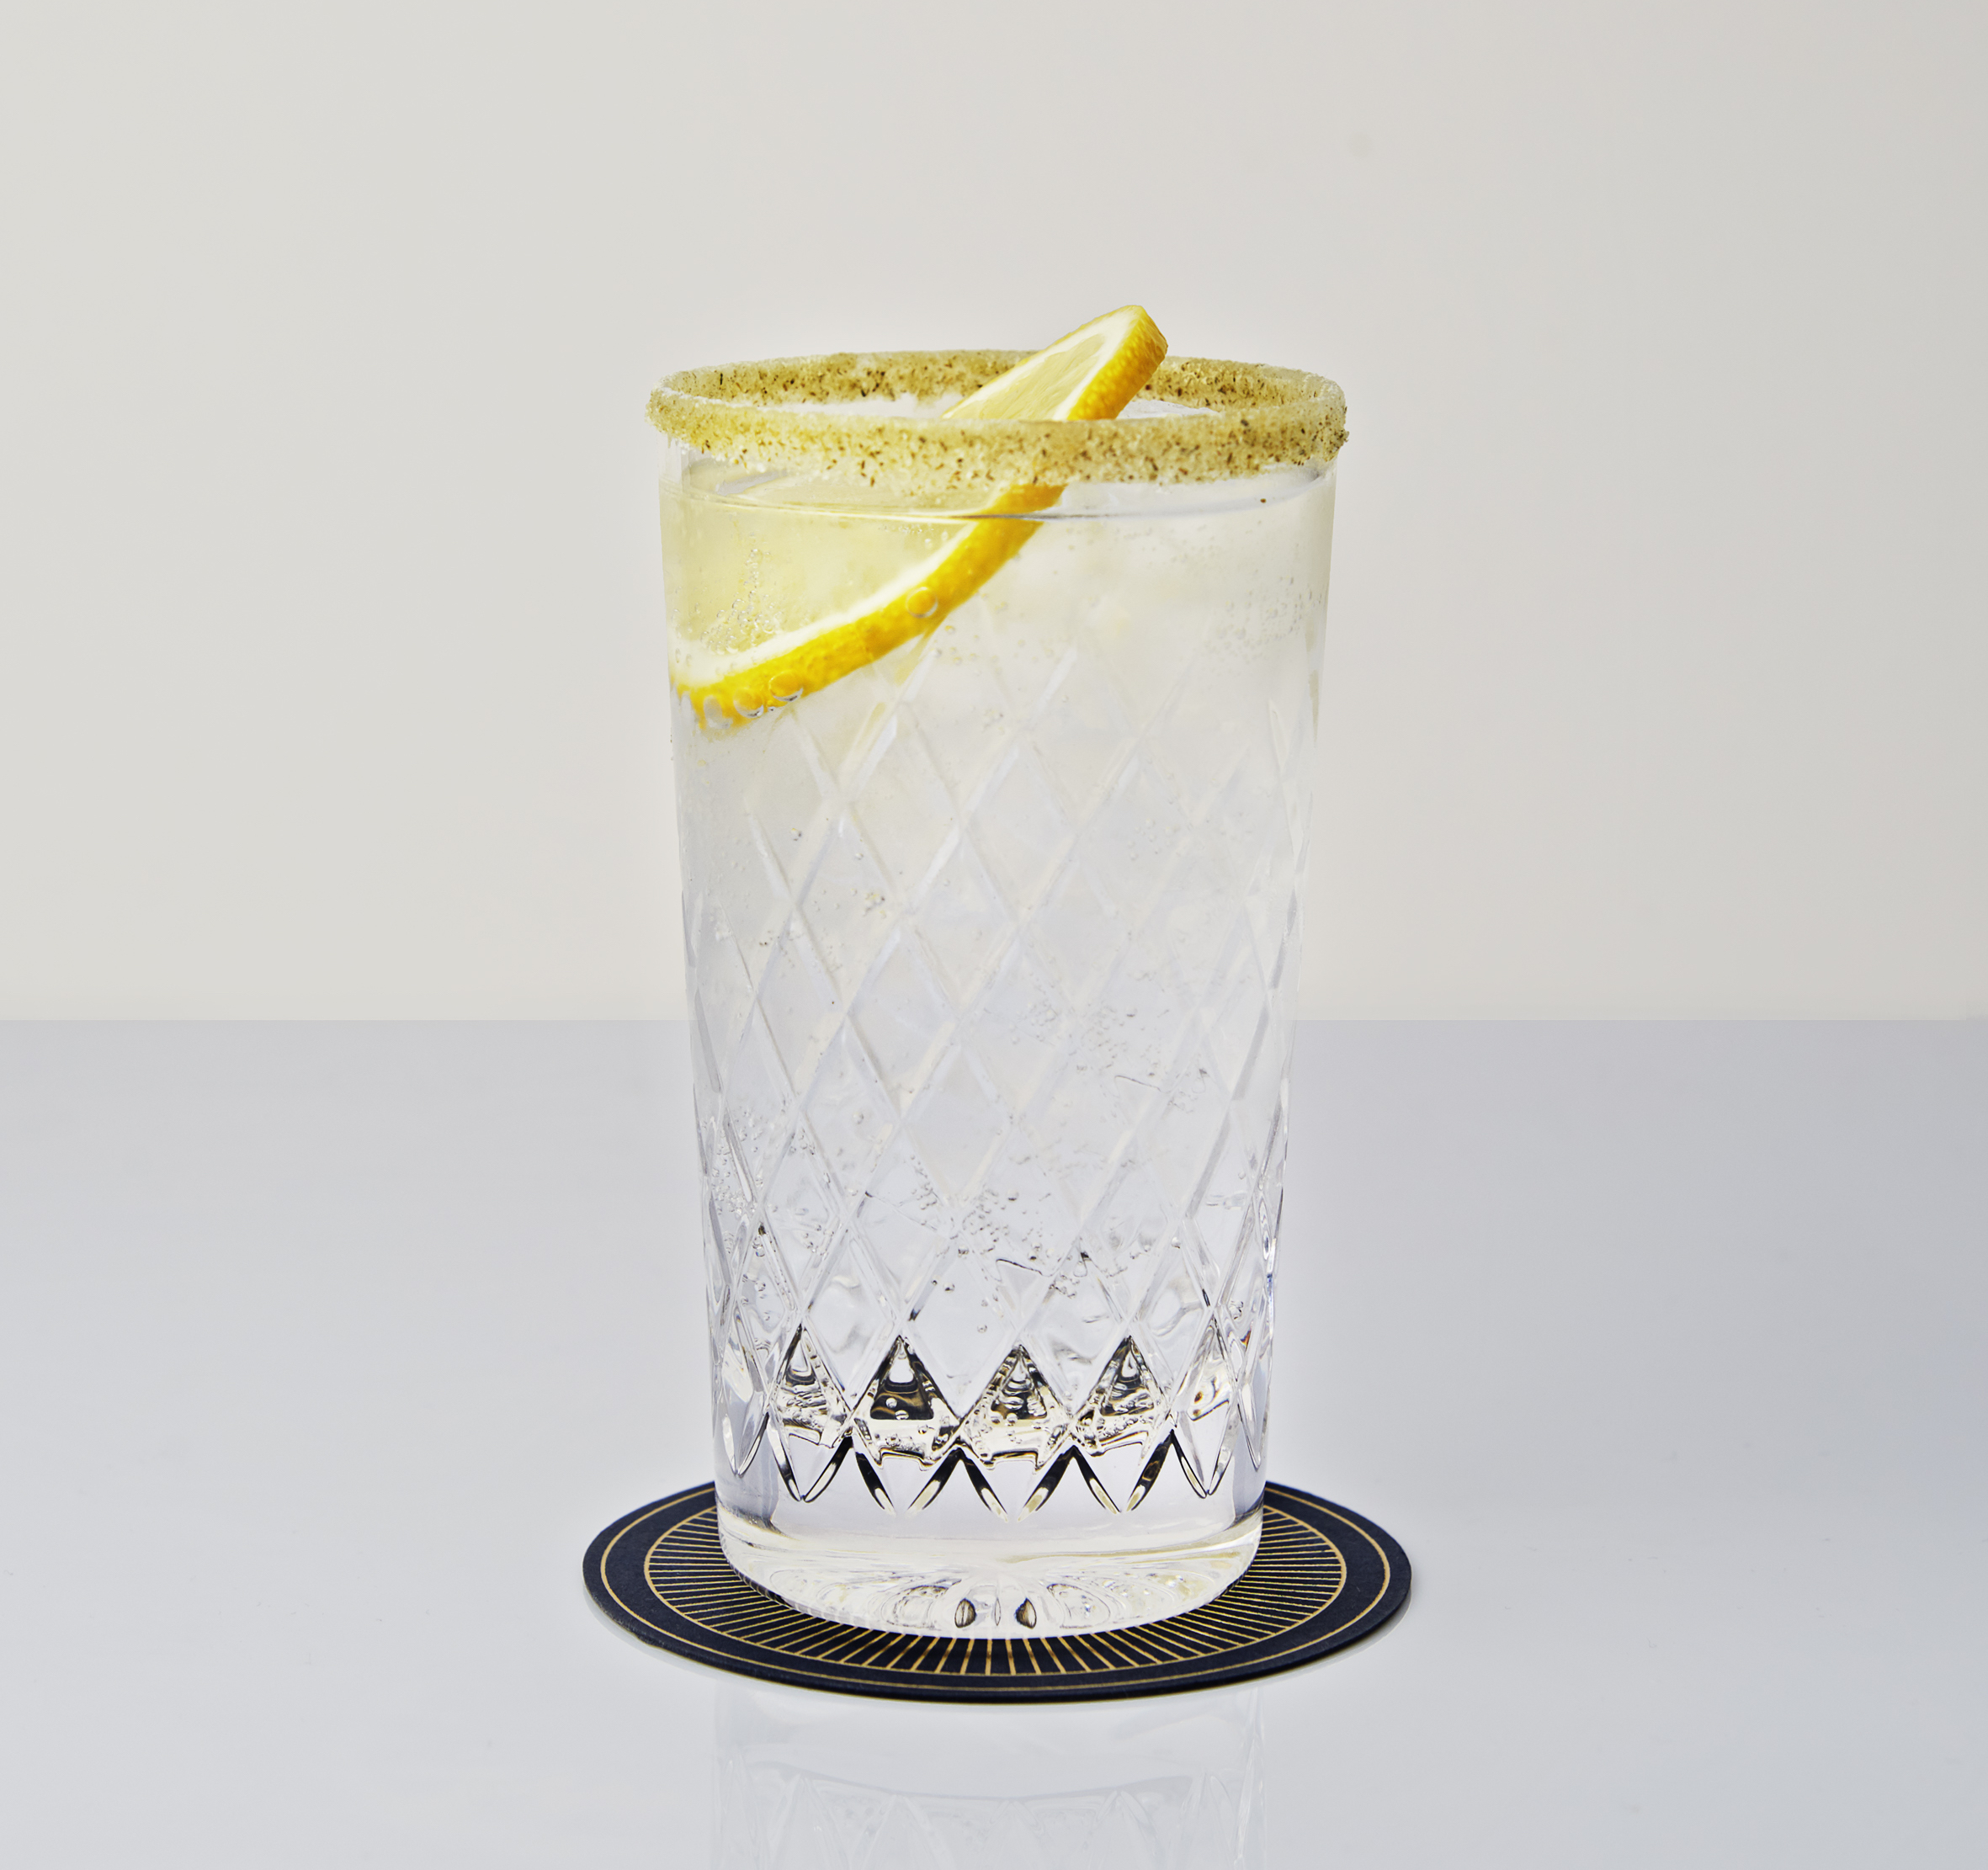 Hepple Gin and tonic